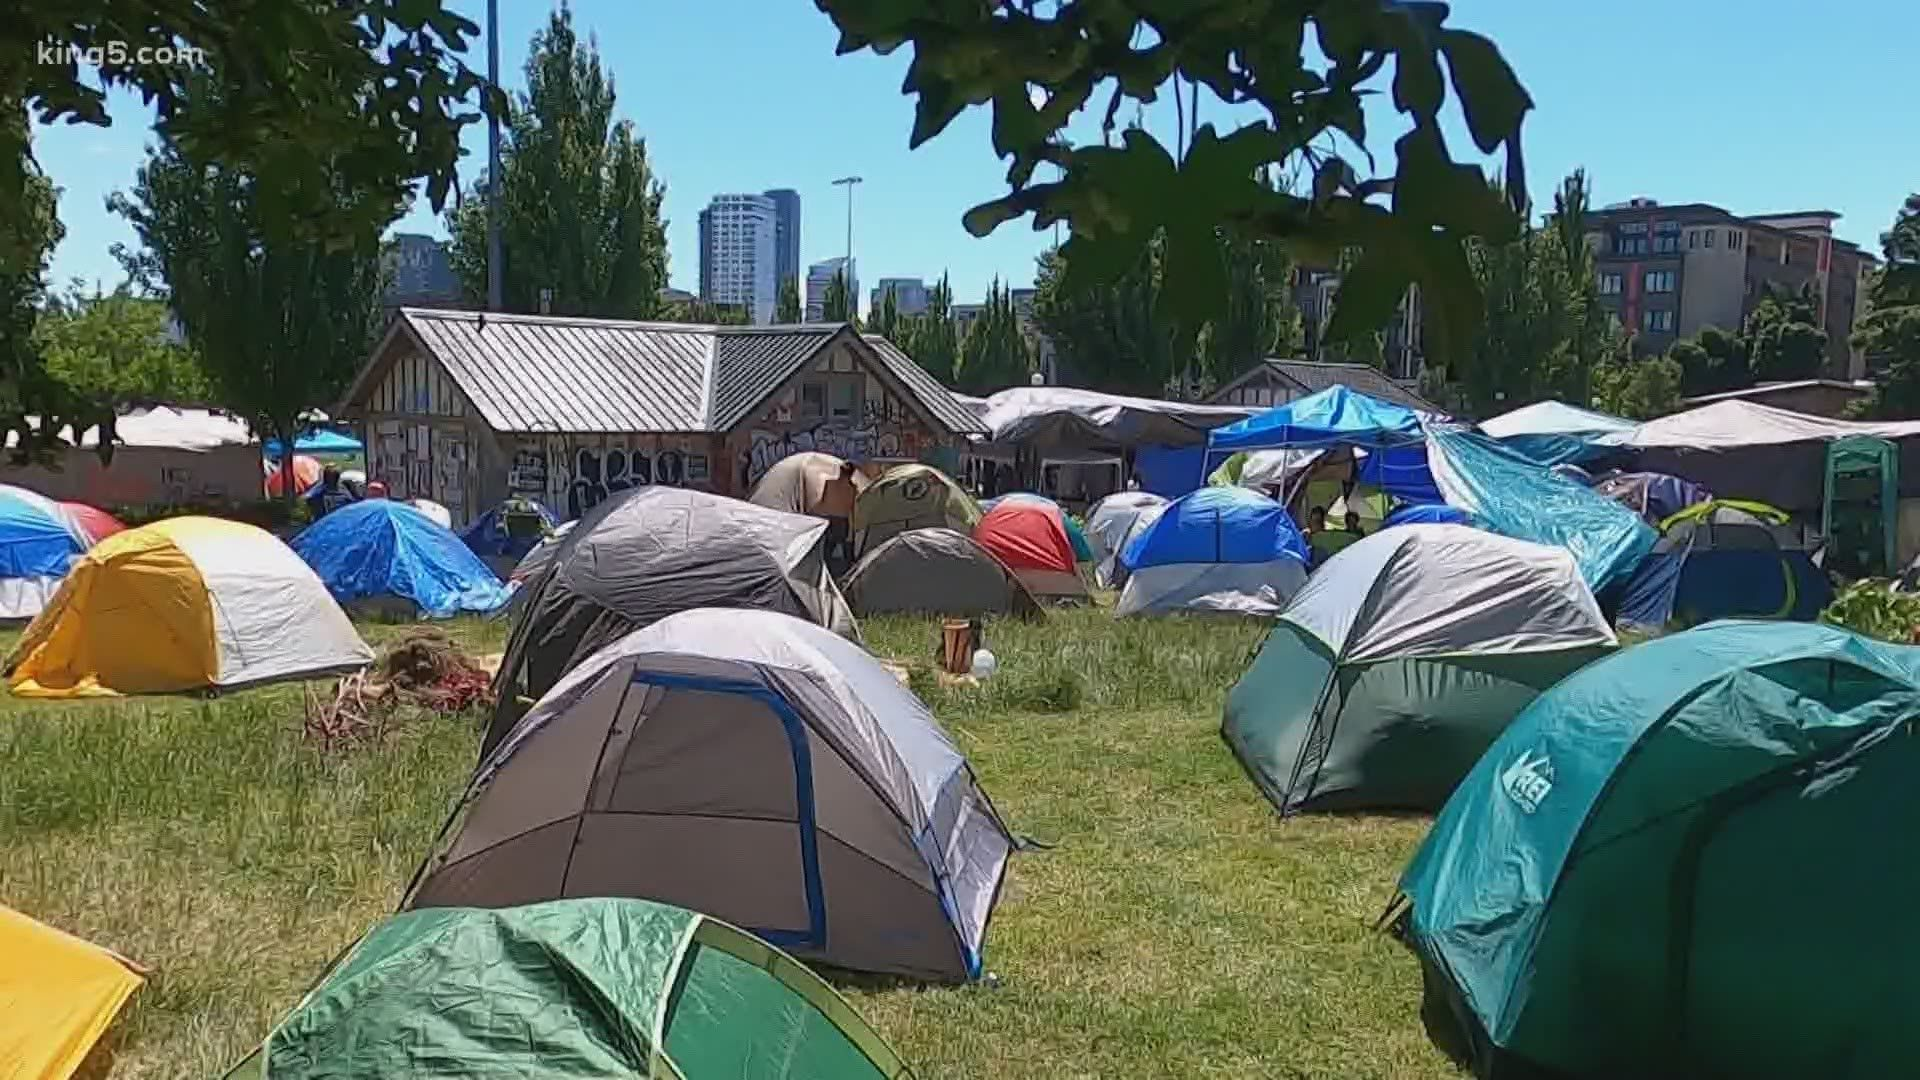 Frustrated Residents Near Seattle S Chop Zone Want Their Neighborhood Back King5 Com The Neighbourhood Resident Frustration